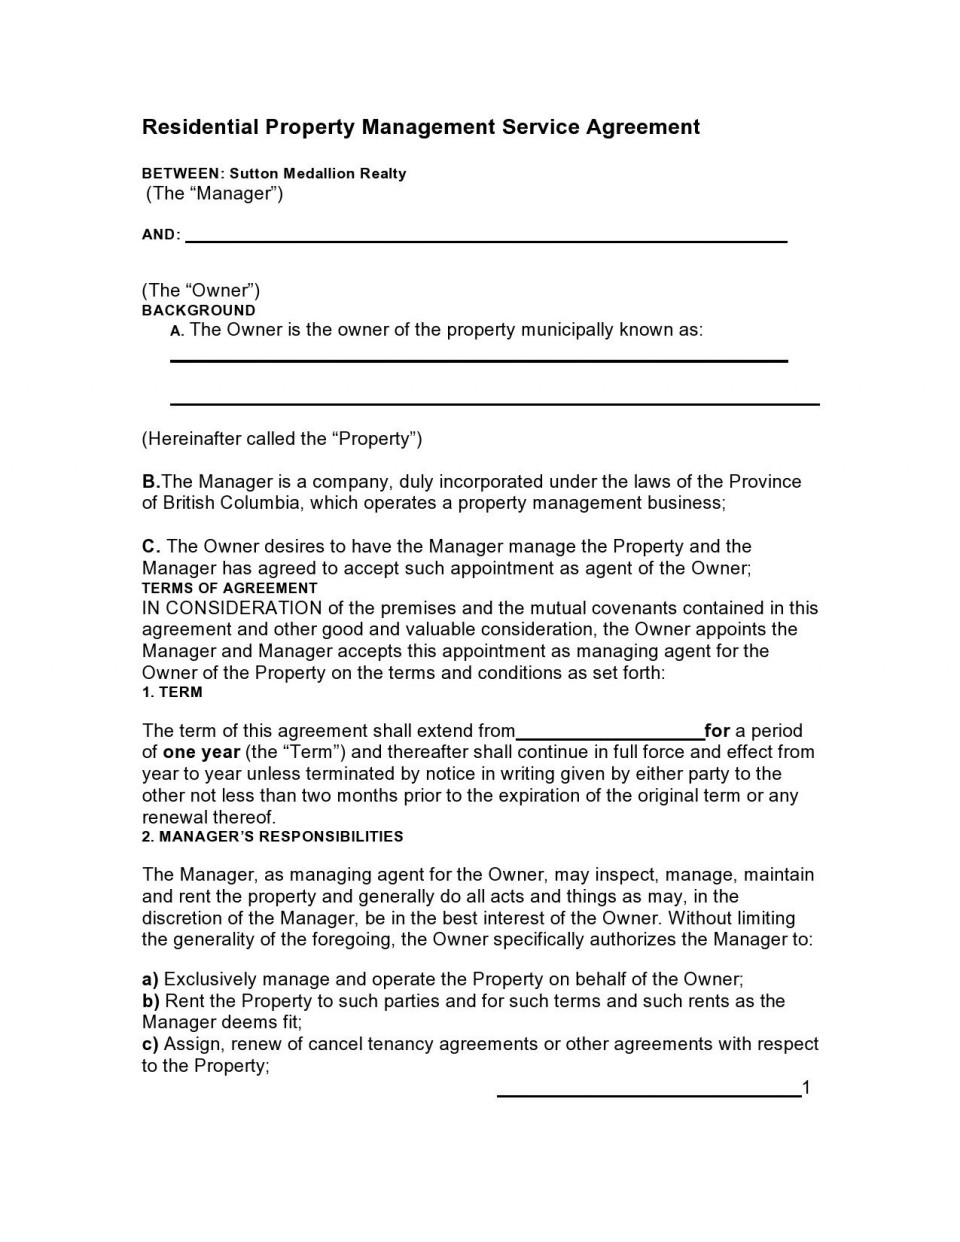 007 Top Property Management Contract Template Uk Sample  Free Agreement Commercial960